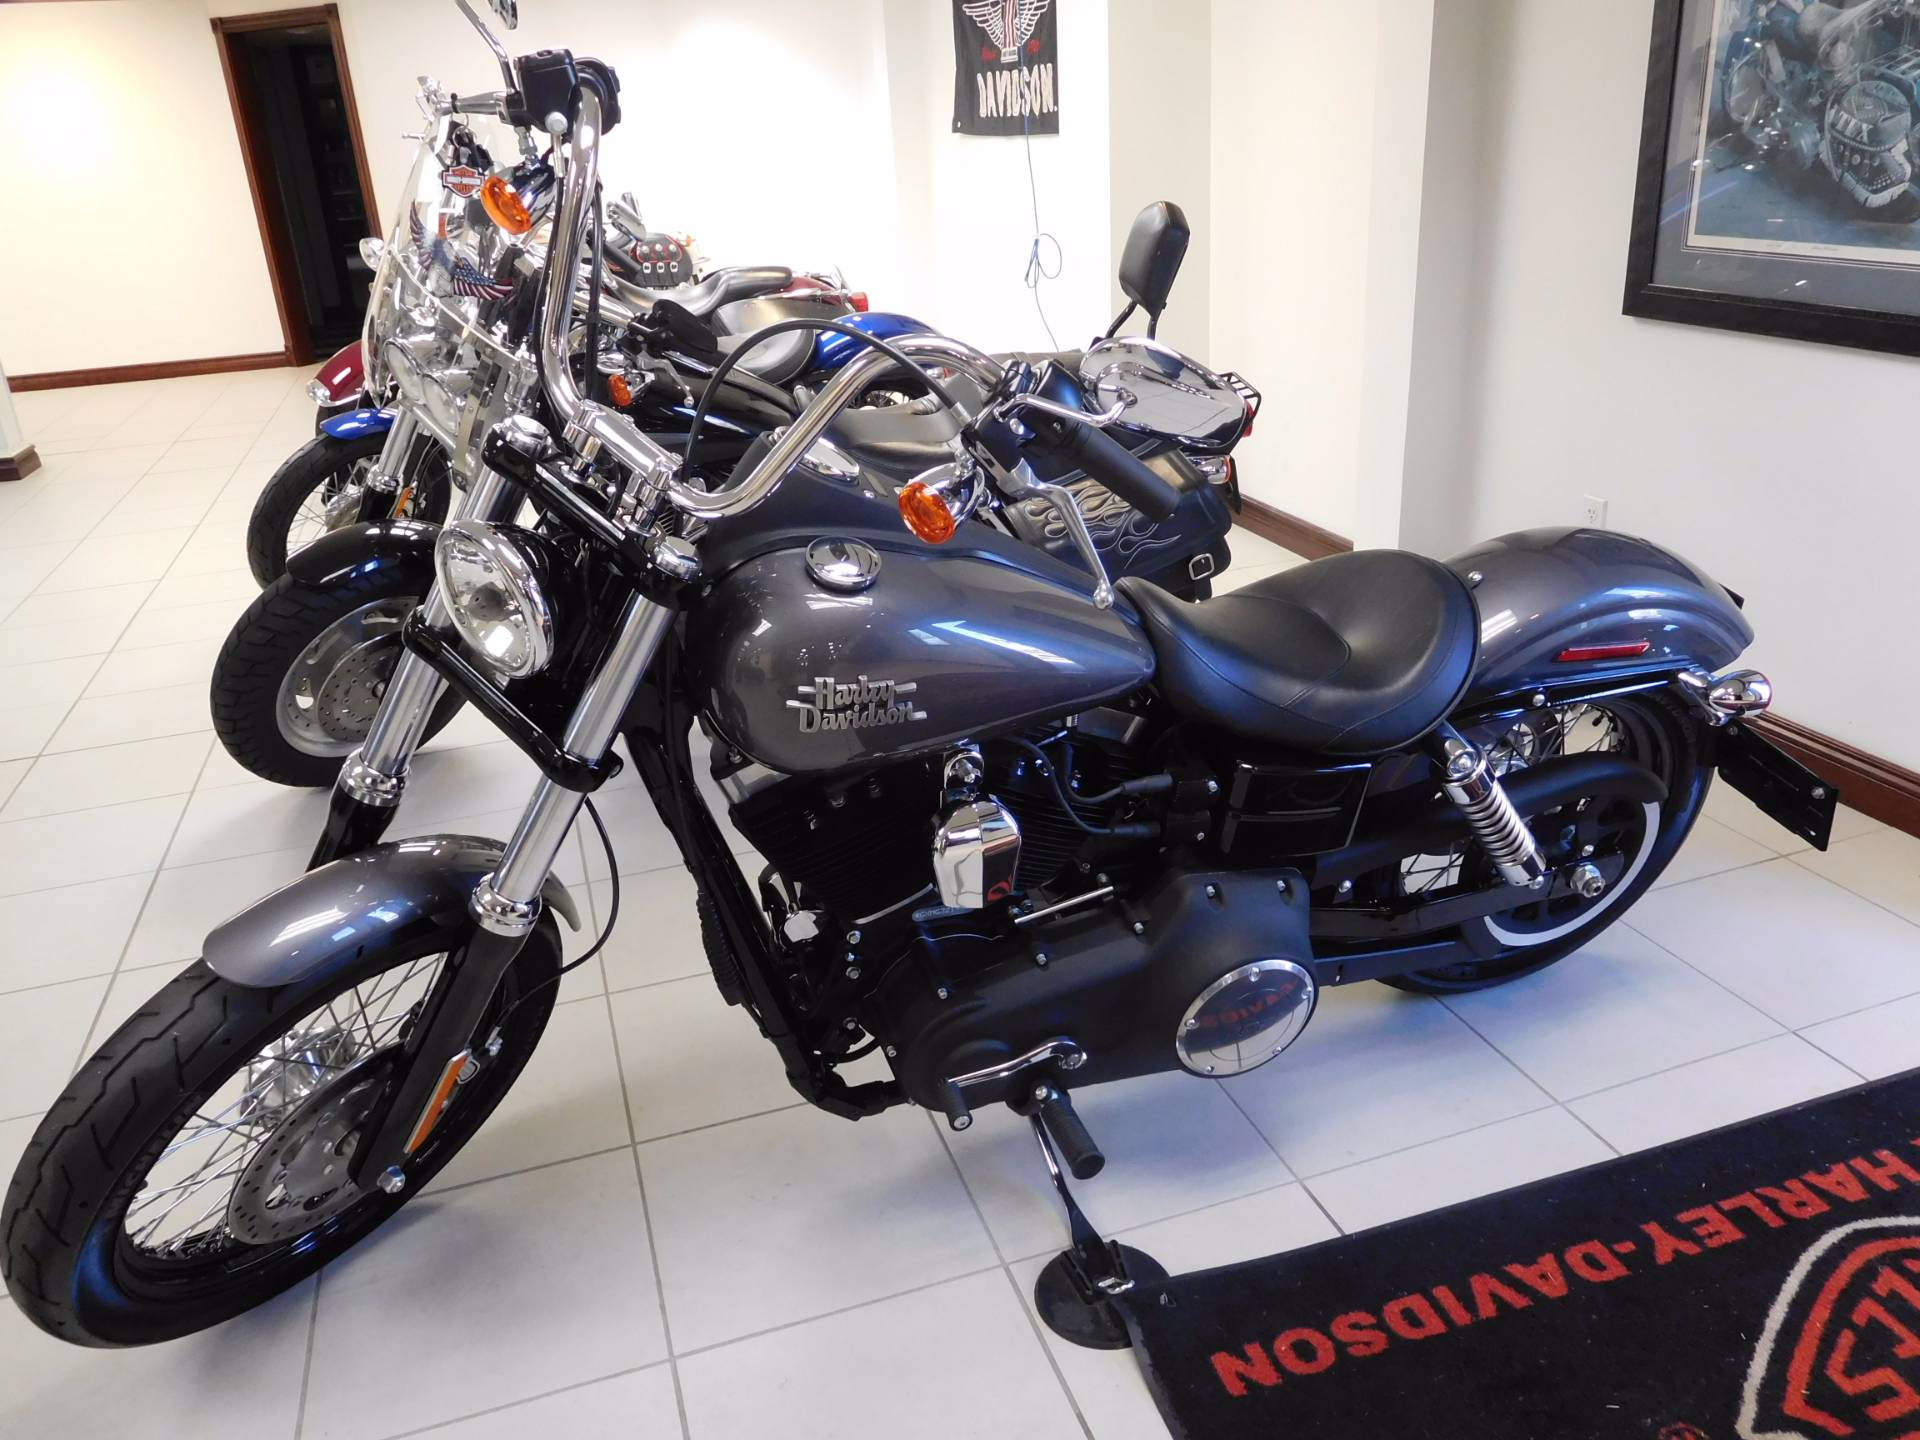 2016 Harley Davidson Street Bob In Rochester Minnesota Photo 1